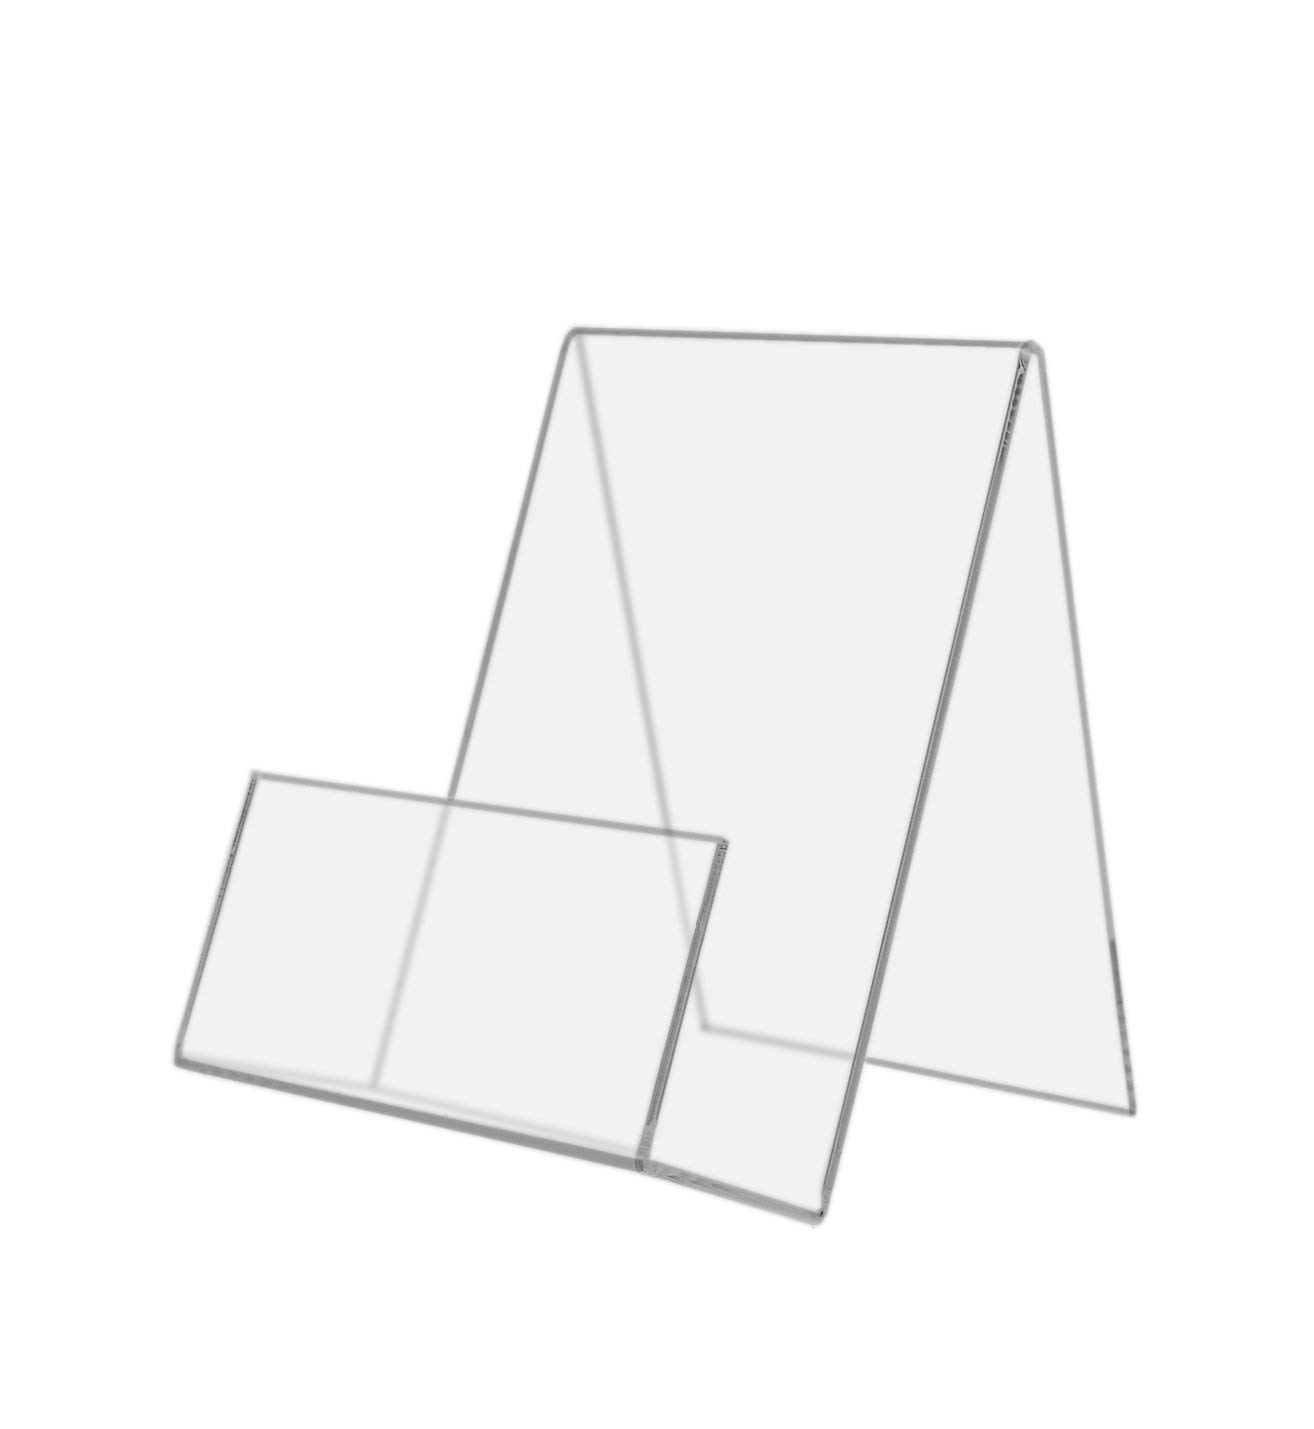 Marketing Holders 4 x 5-3/4 Inches Clear Acrylic Desktop Easel with Front Pocket for Promotional Literature, Rack Cards, Postcards (1)